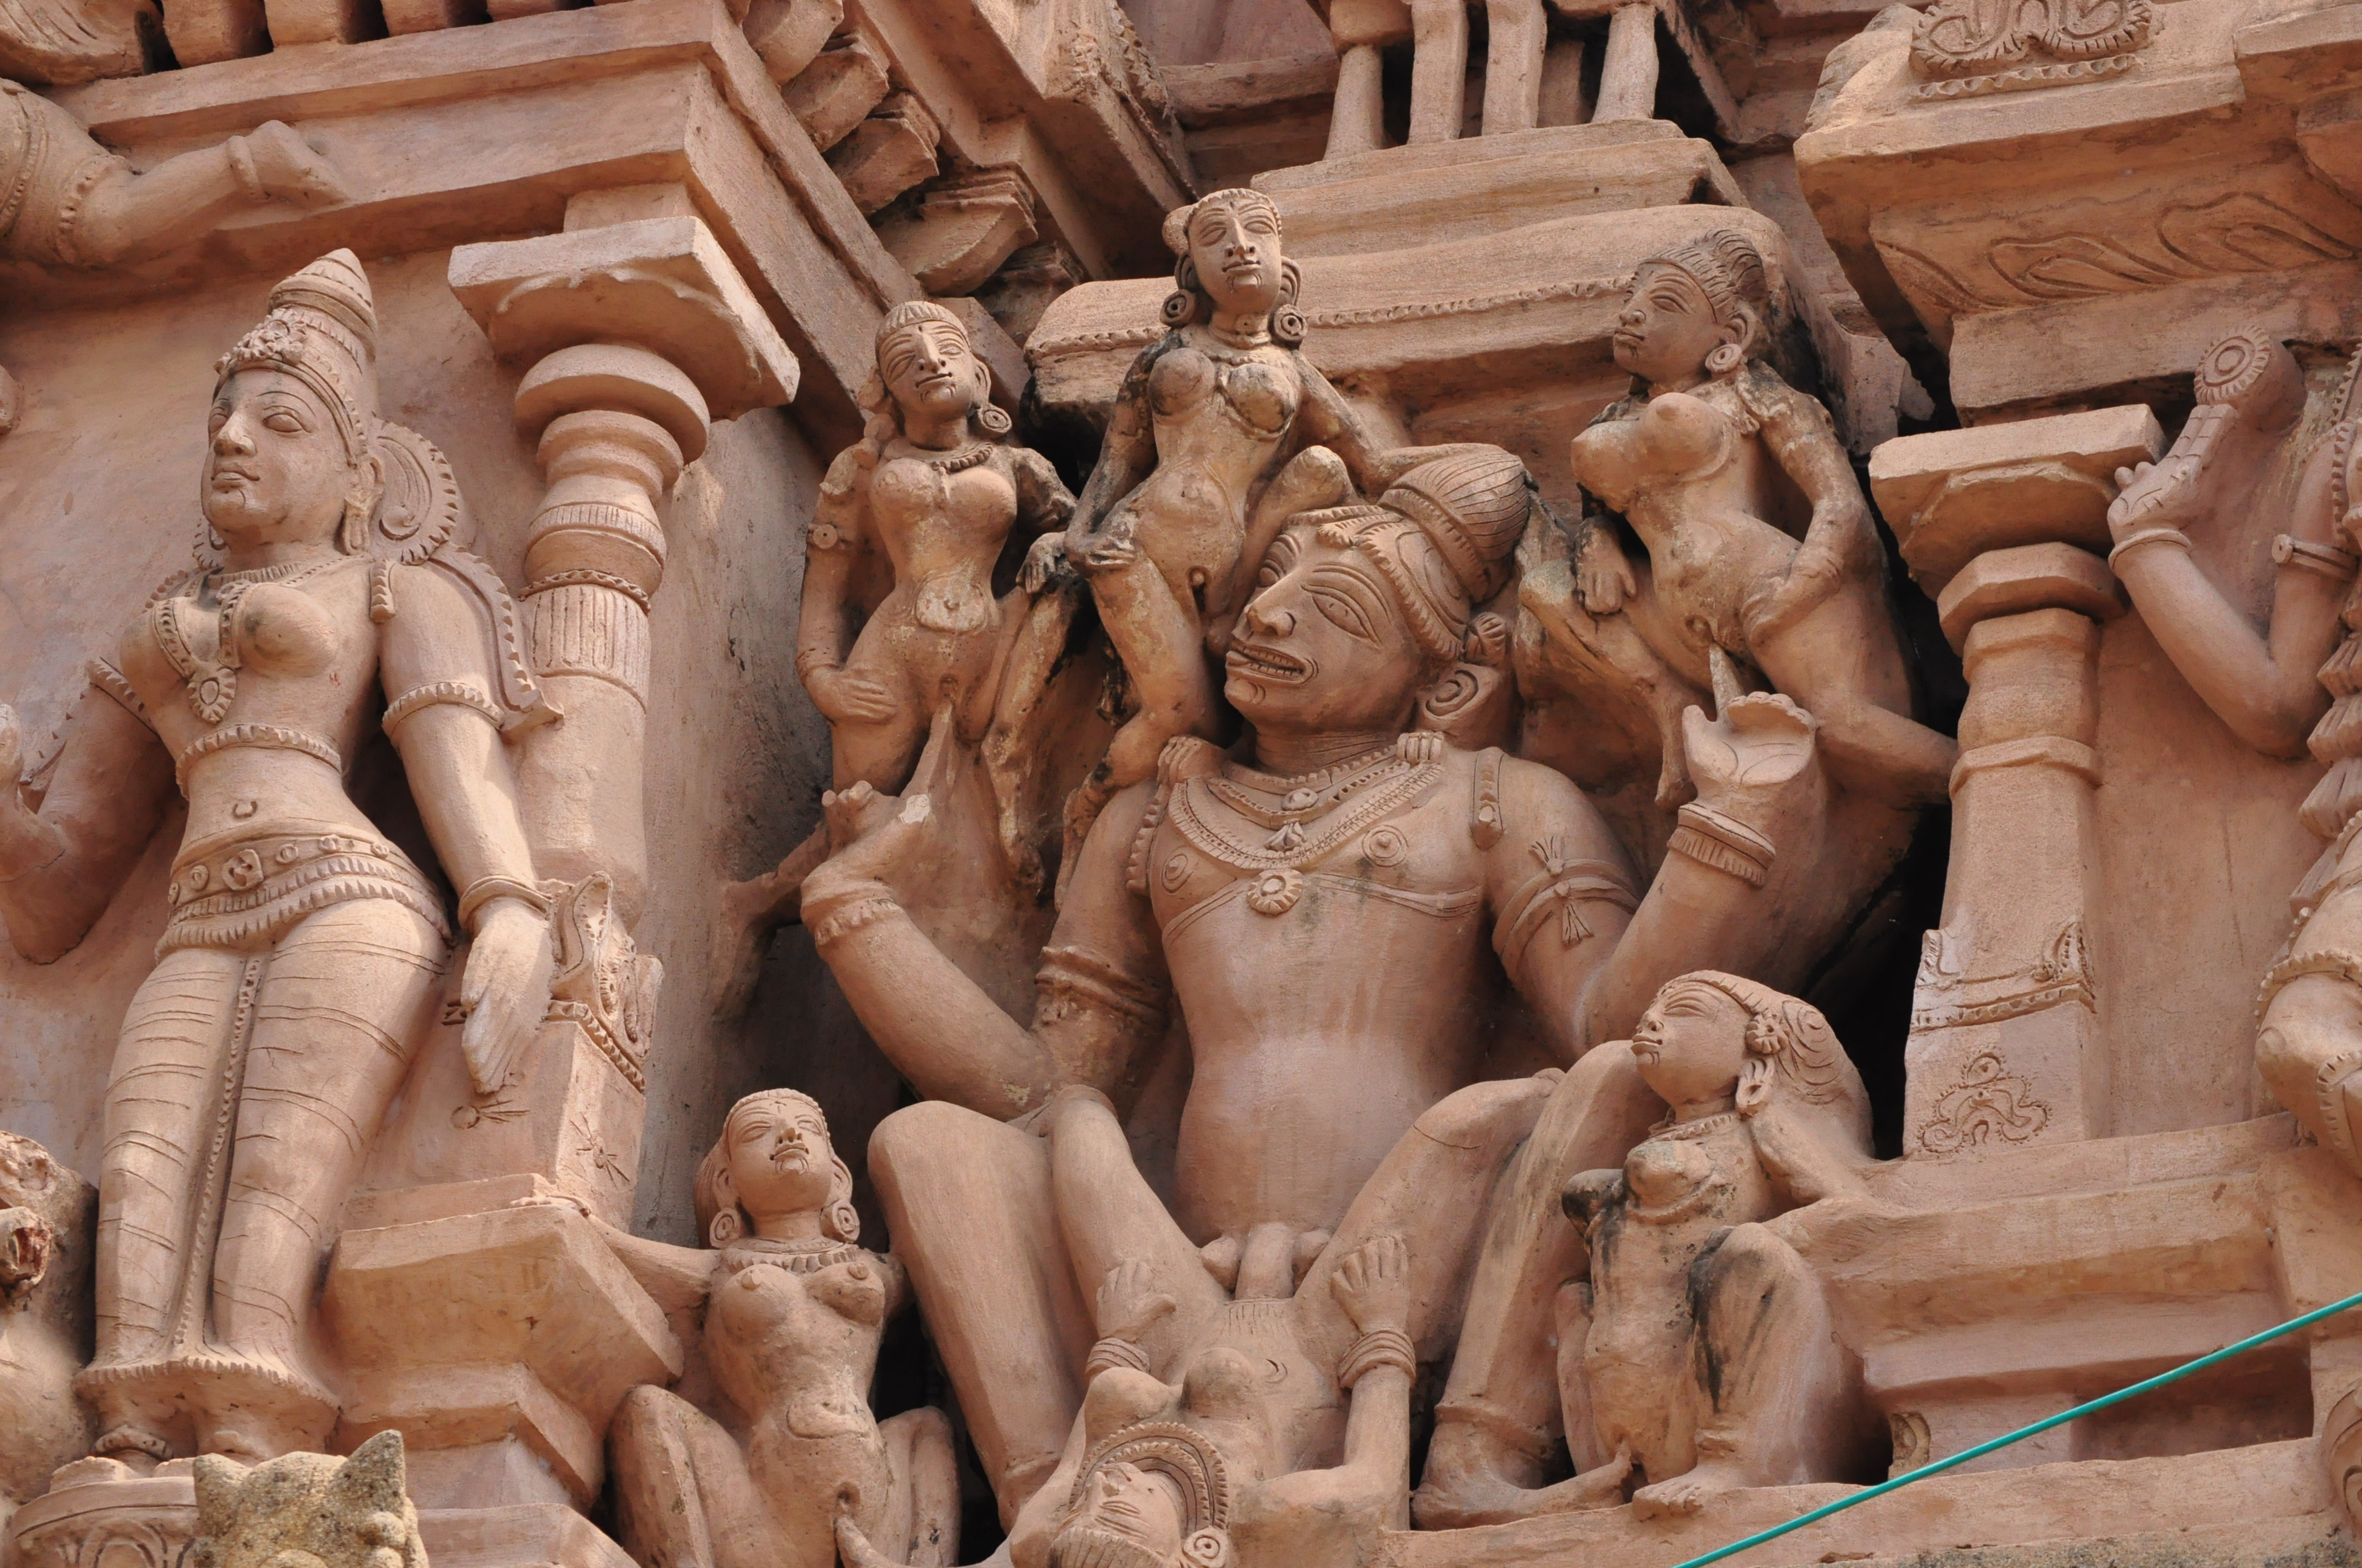 File:Sex statue in temple.jpeg - Wikimedia Commons